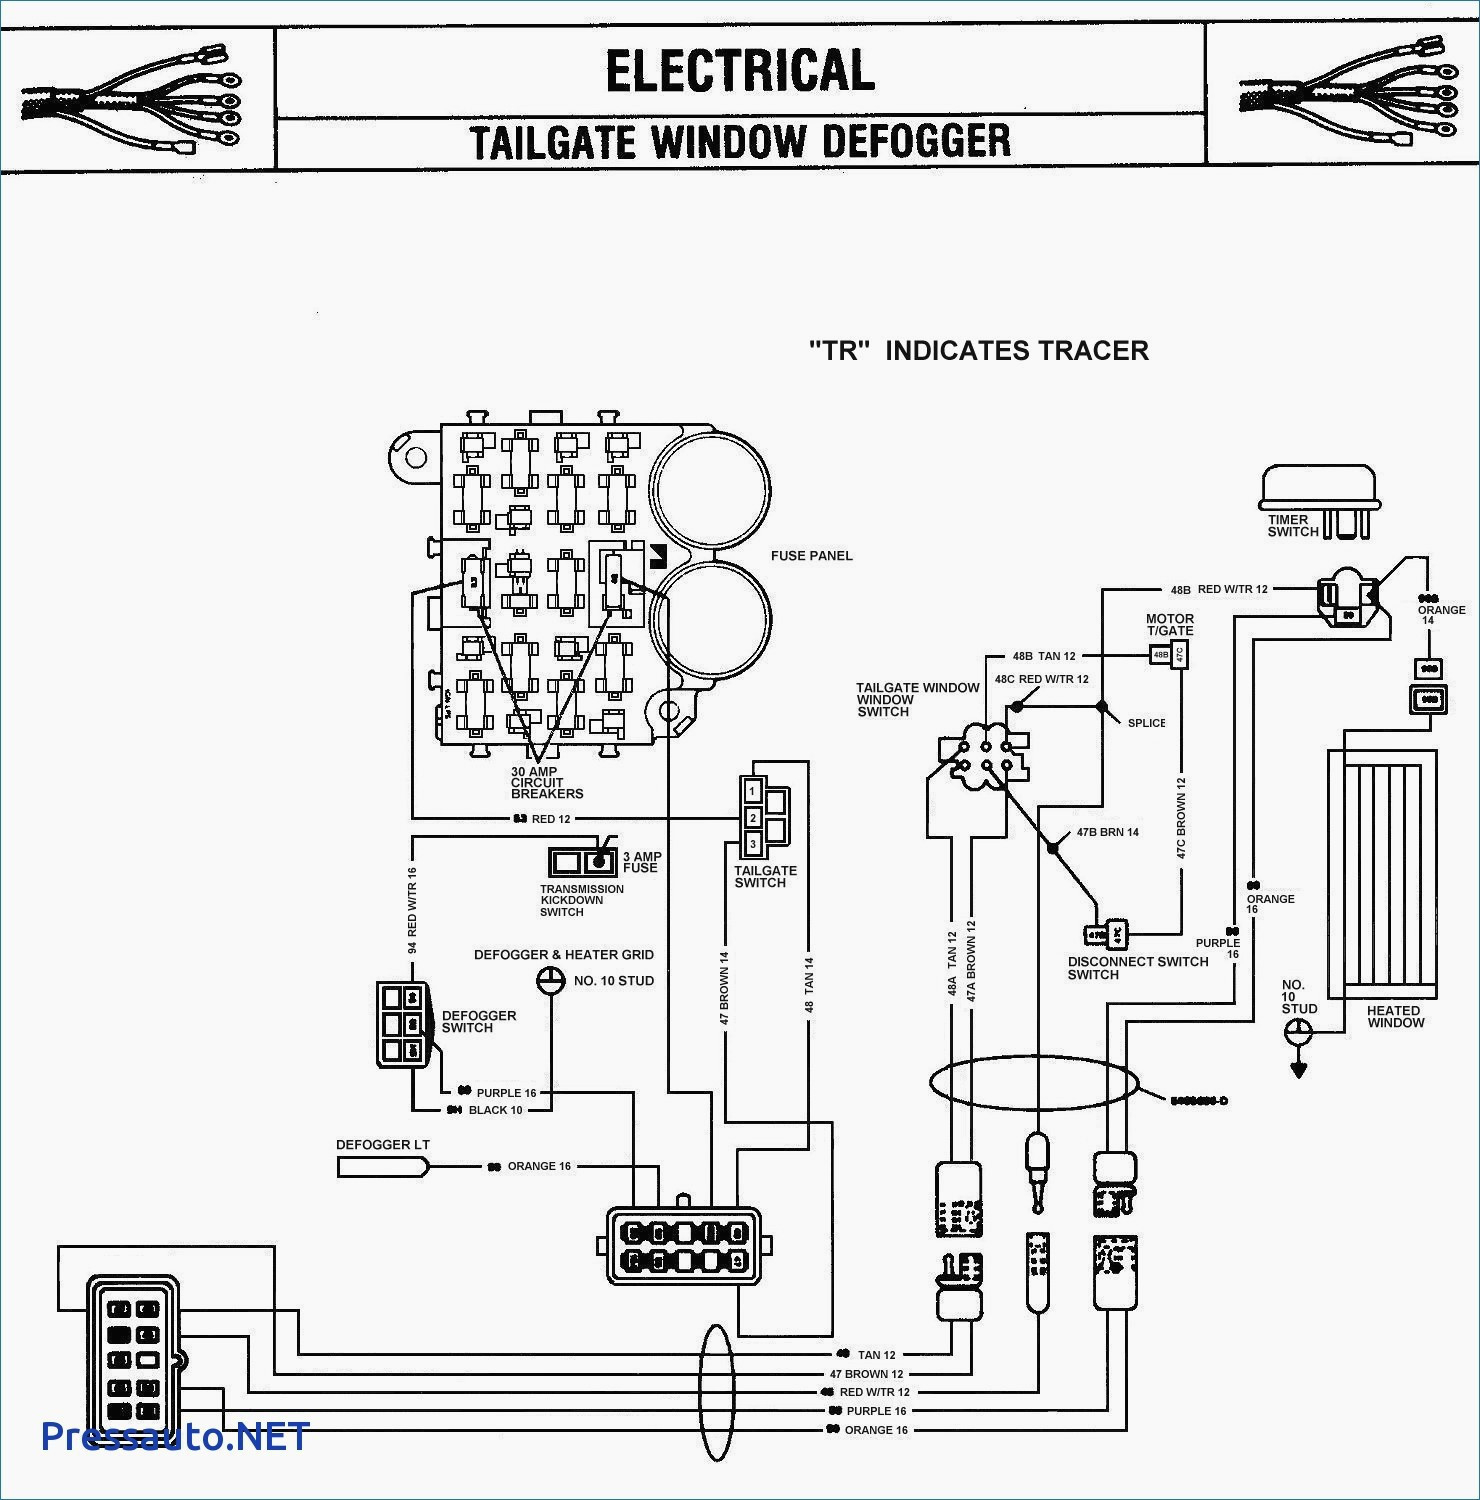 Central ac unit wiring diagram wire center carrier ac unit wiring diagram gallery wiring diagram sample rh faceitsalon com 2008 suzuki forenza wiring diagram coleman ac wiring diagram asfbconference2016